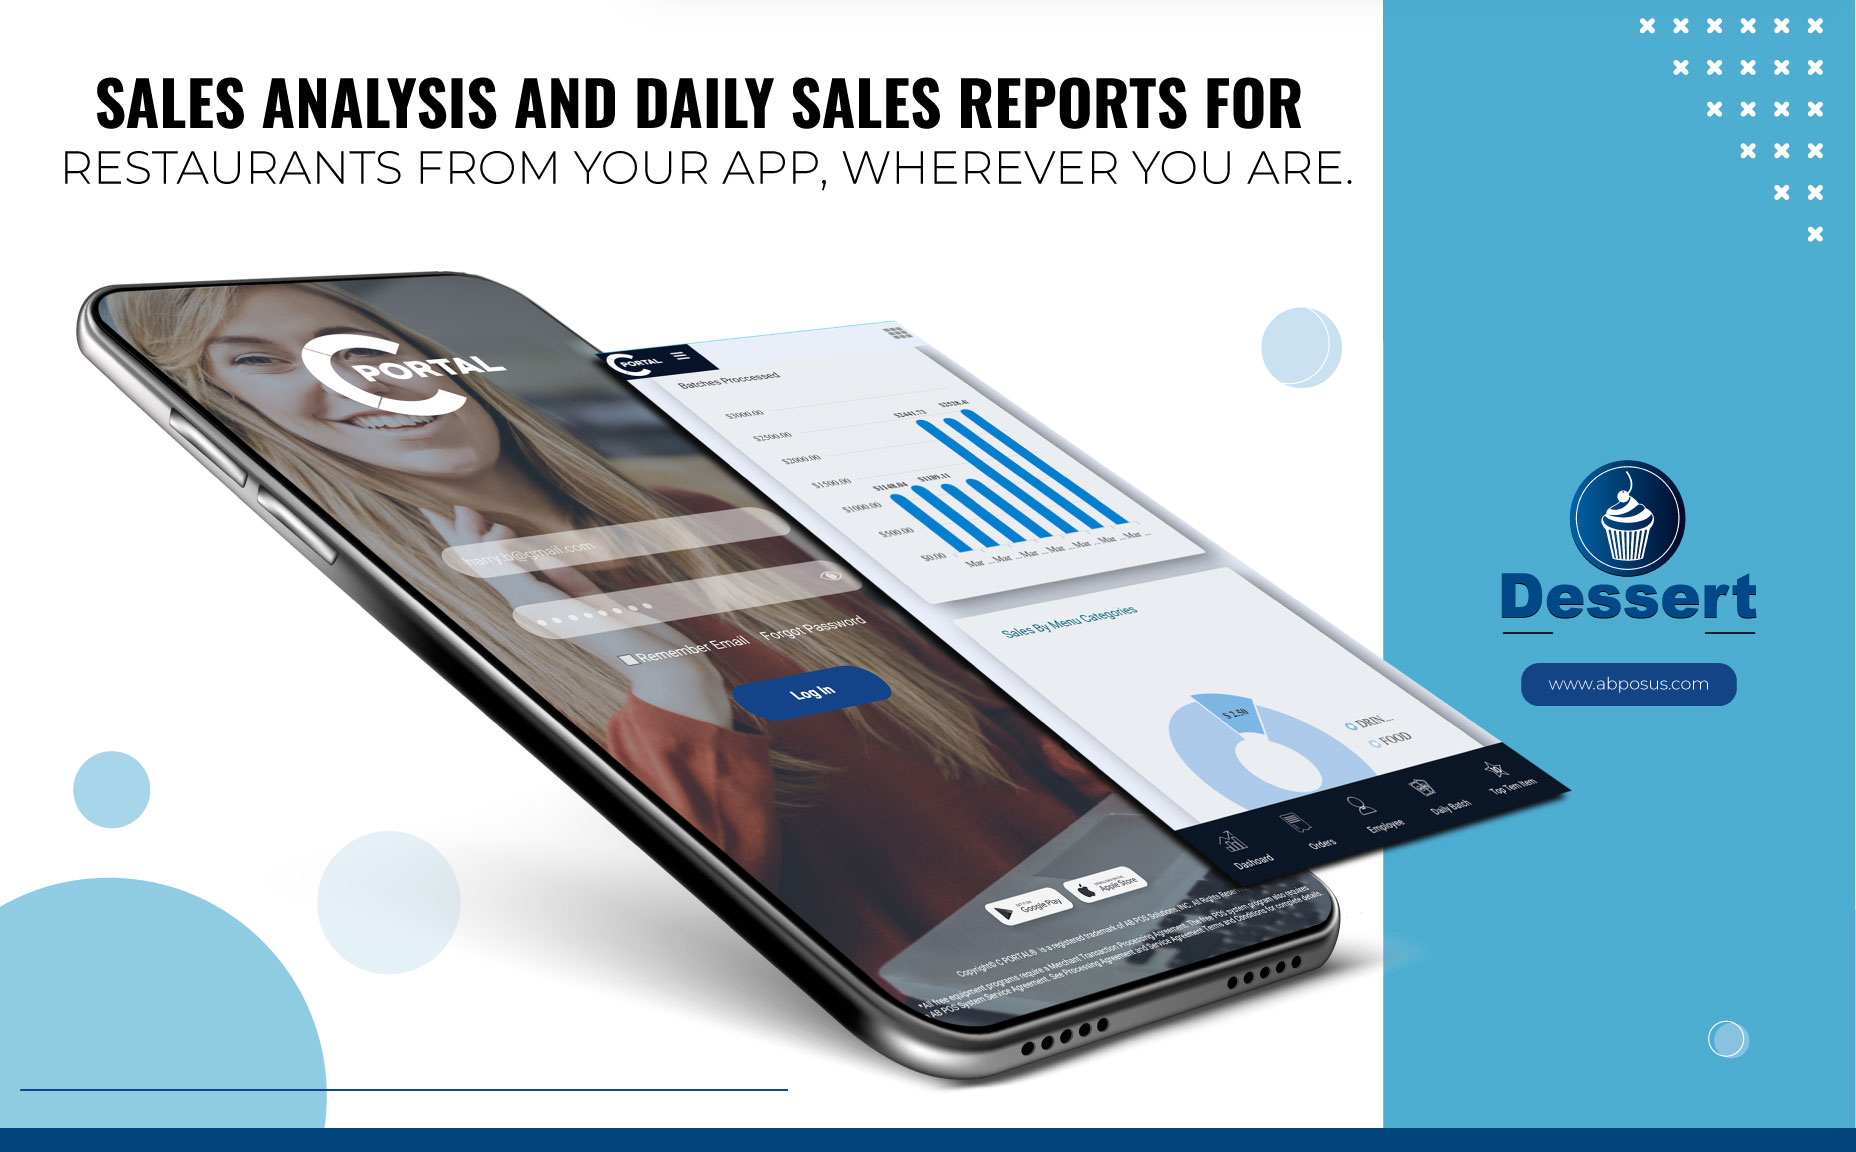 Get quick access to a full range of reports. Say goodbye to number crunching and hello to knowing exactly how well your business is doing.